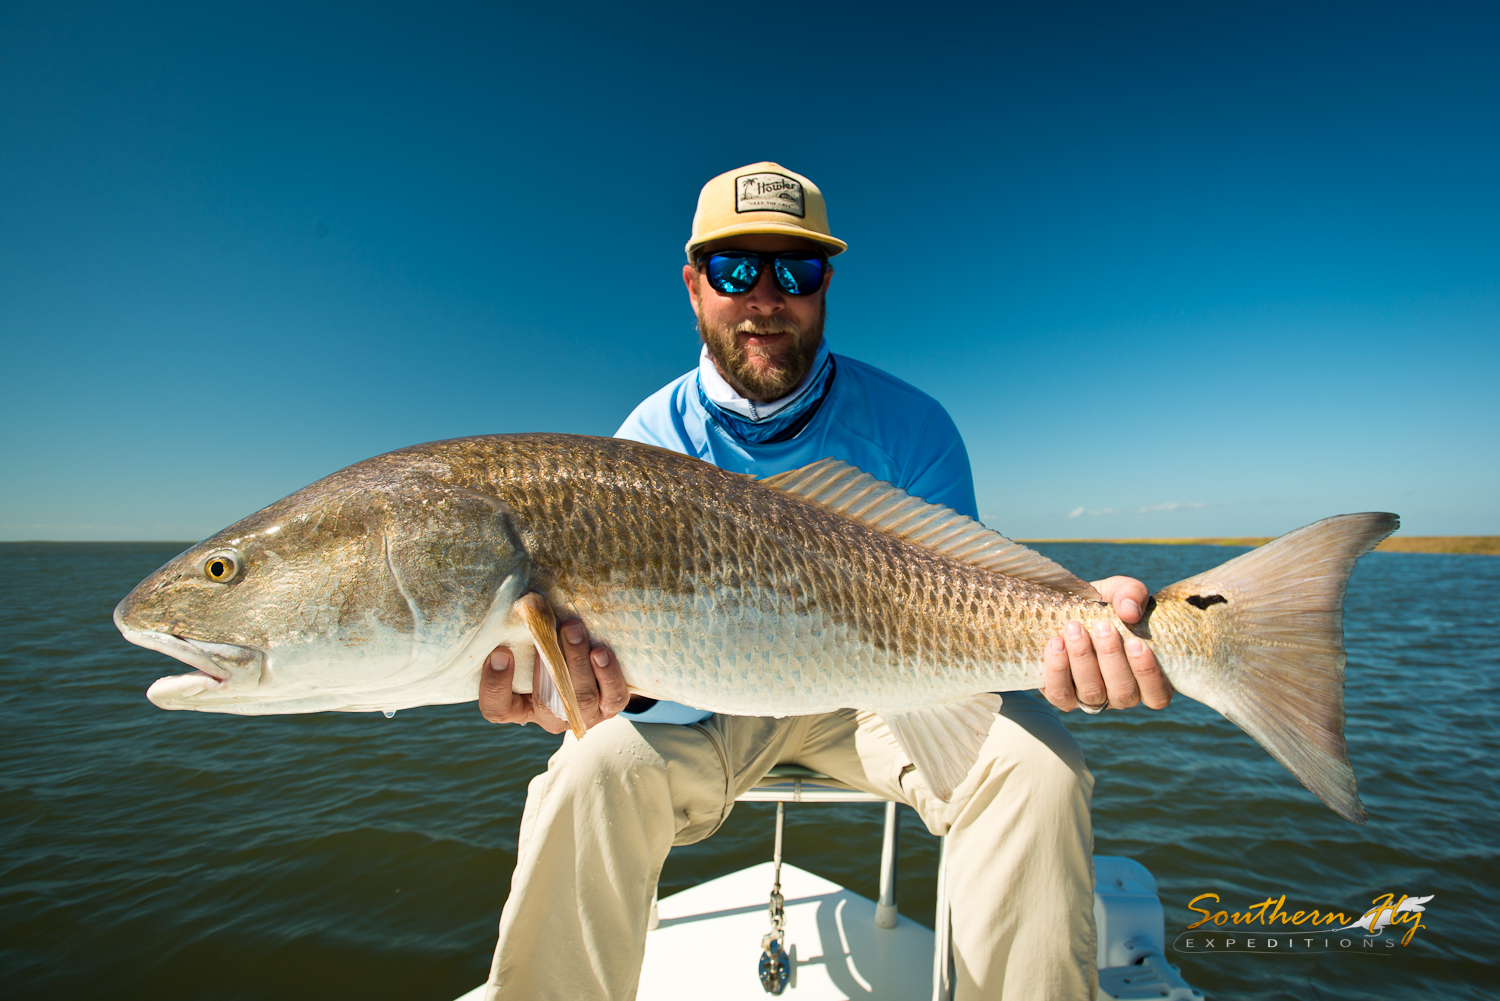 fly fishing charter louisiana - marsh and inshore redfish fishing Southern Fly Expeditions